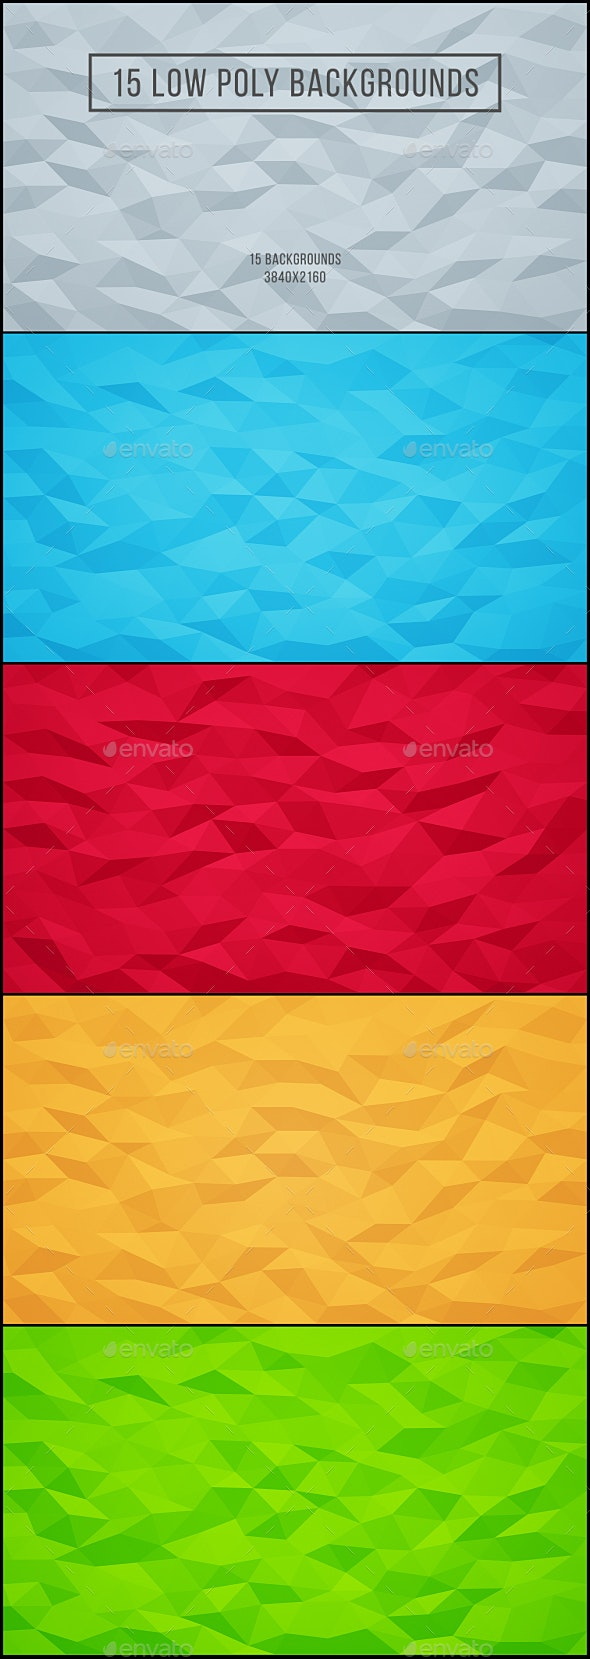 15 Low Poly Backgrounds - Abstract Backgrounds